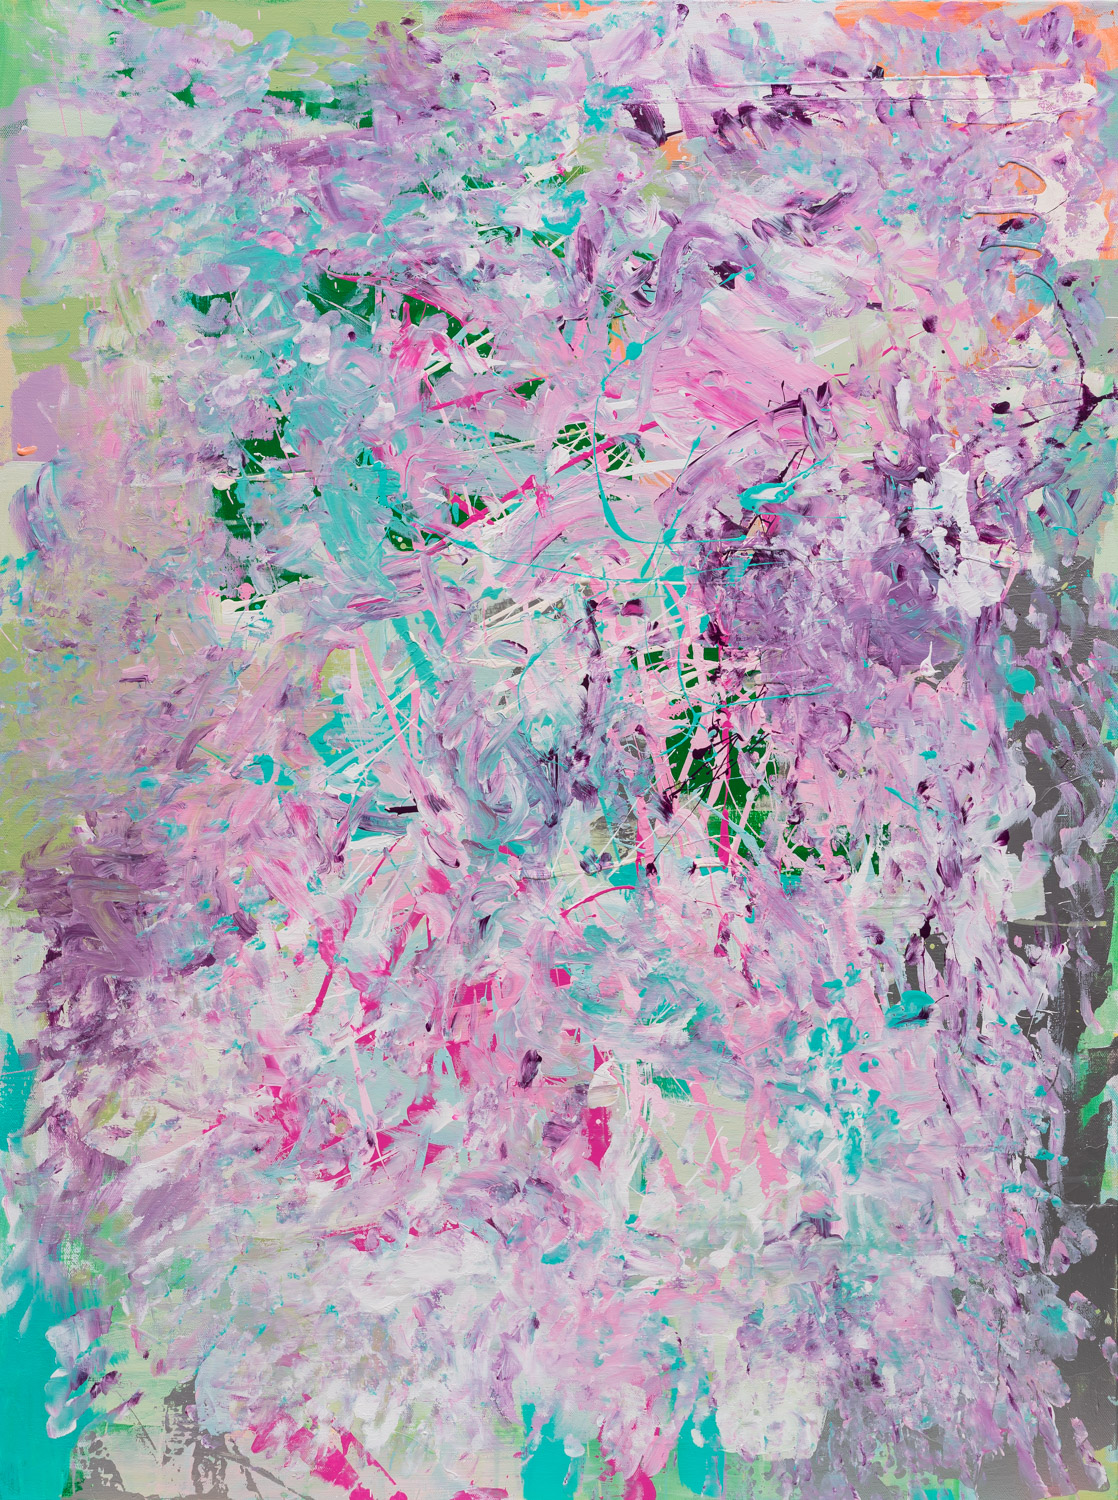 Purple Milky Way artwork by Lauren Cutler - art listed for sale on Artplode